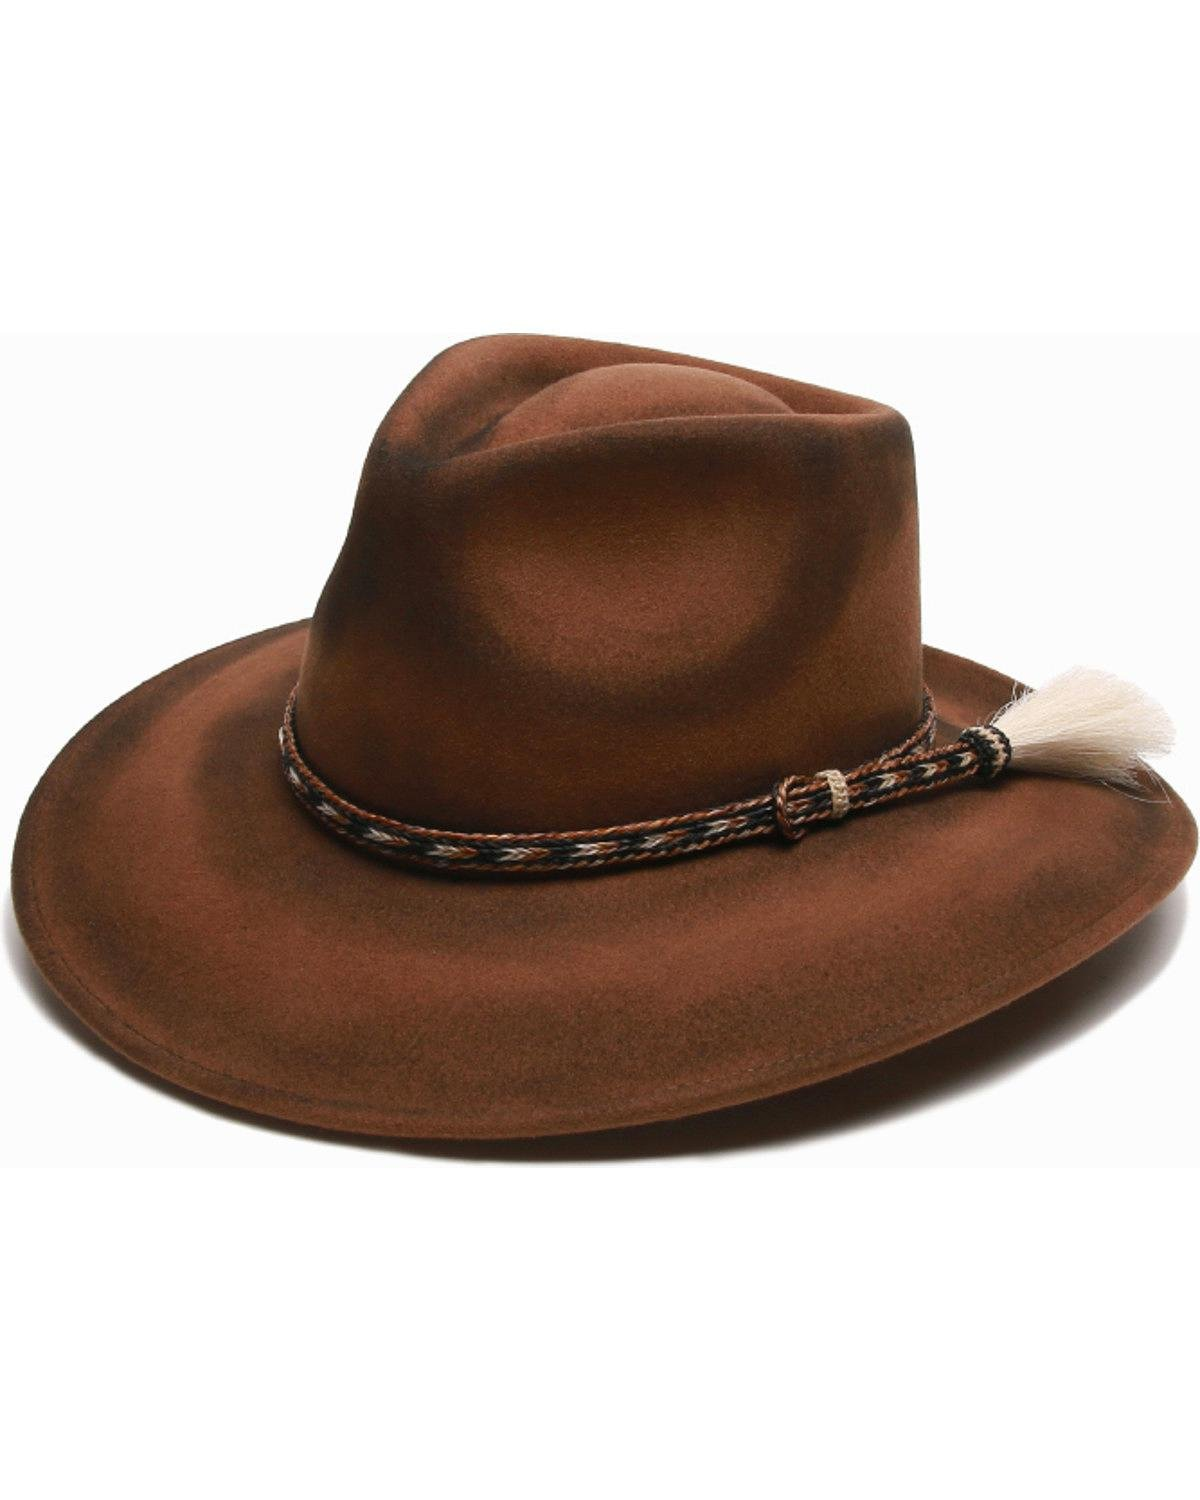 'ale by alessandra Women's Roxy dene Distressed Felt Hat With Horse Tail Trim, Brown, Adjustable Head Size